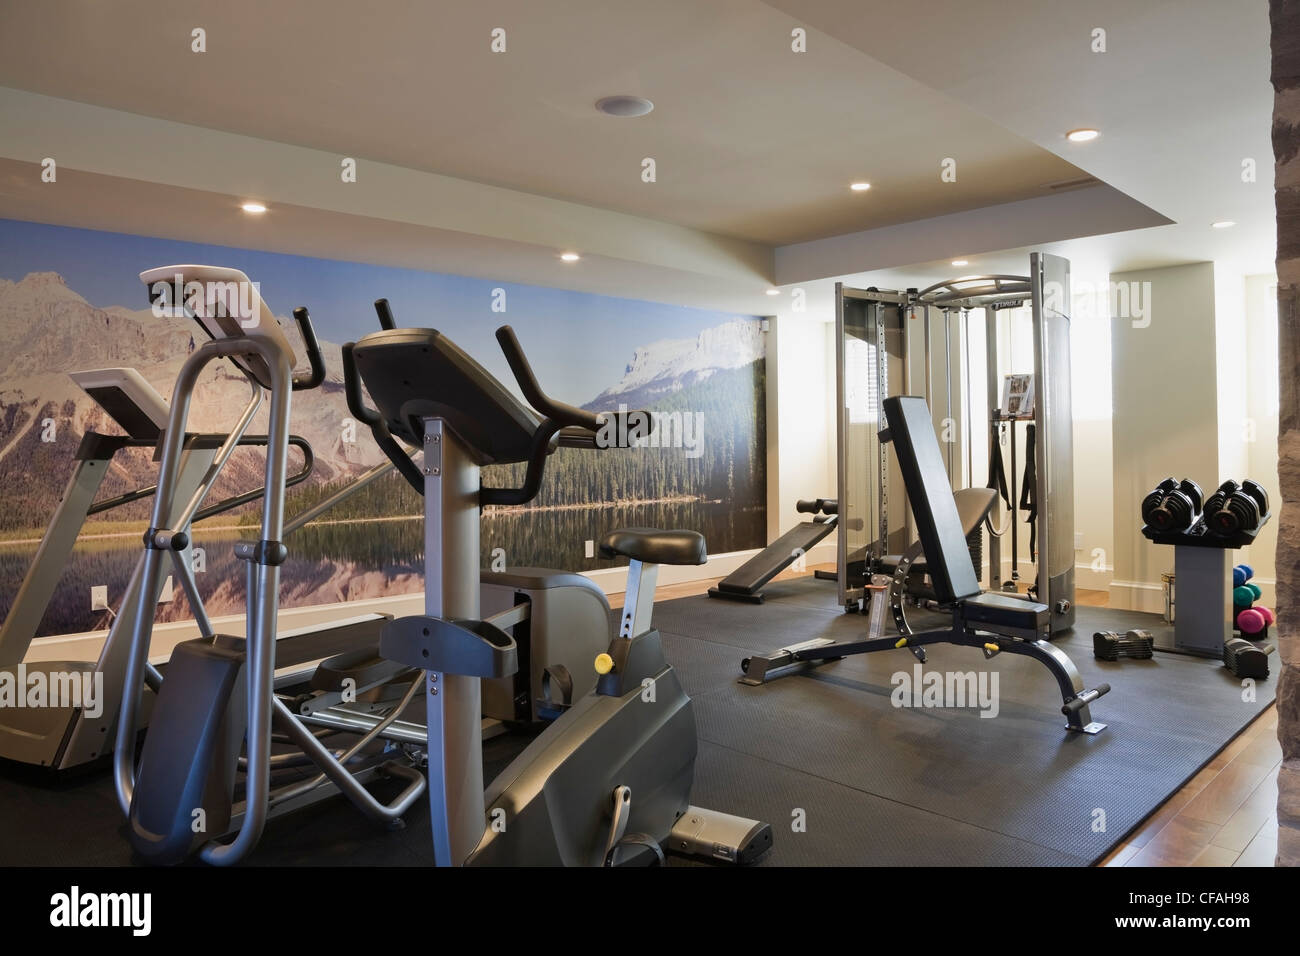 Basement exercise room with fitness equipment in a residential